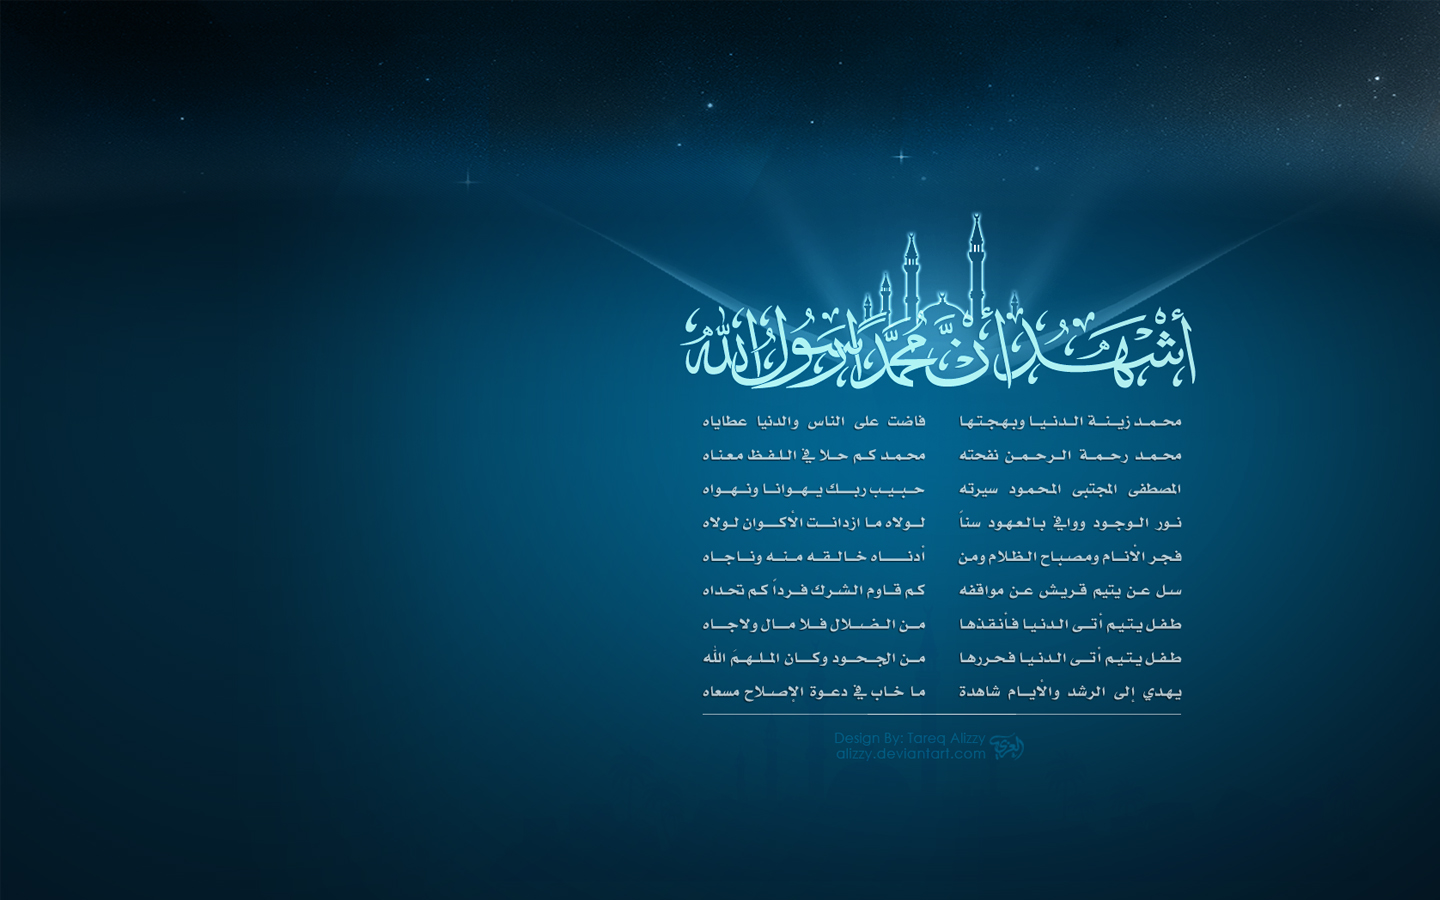 Wallpaper Islami Berwarna Biru